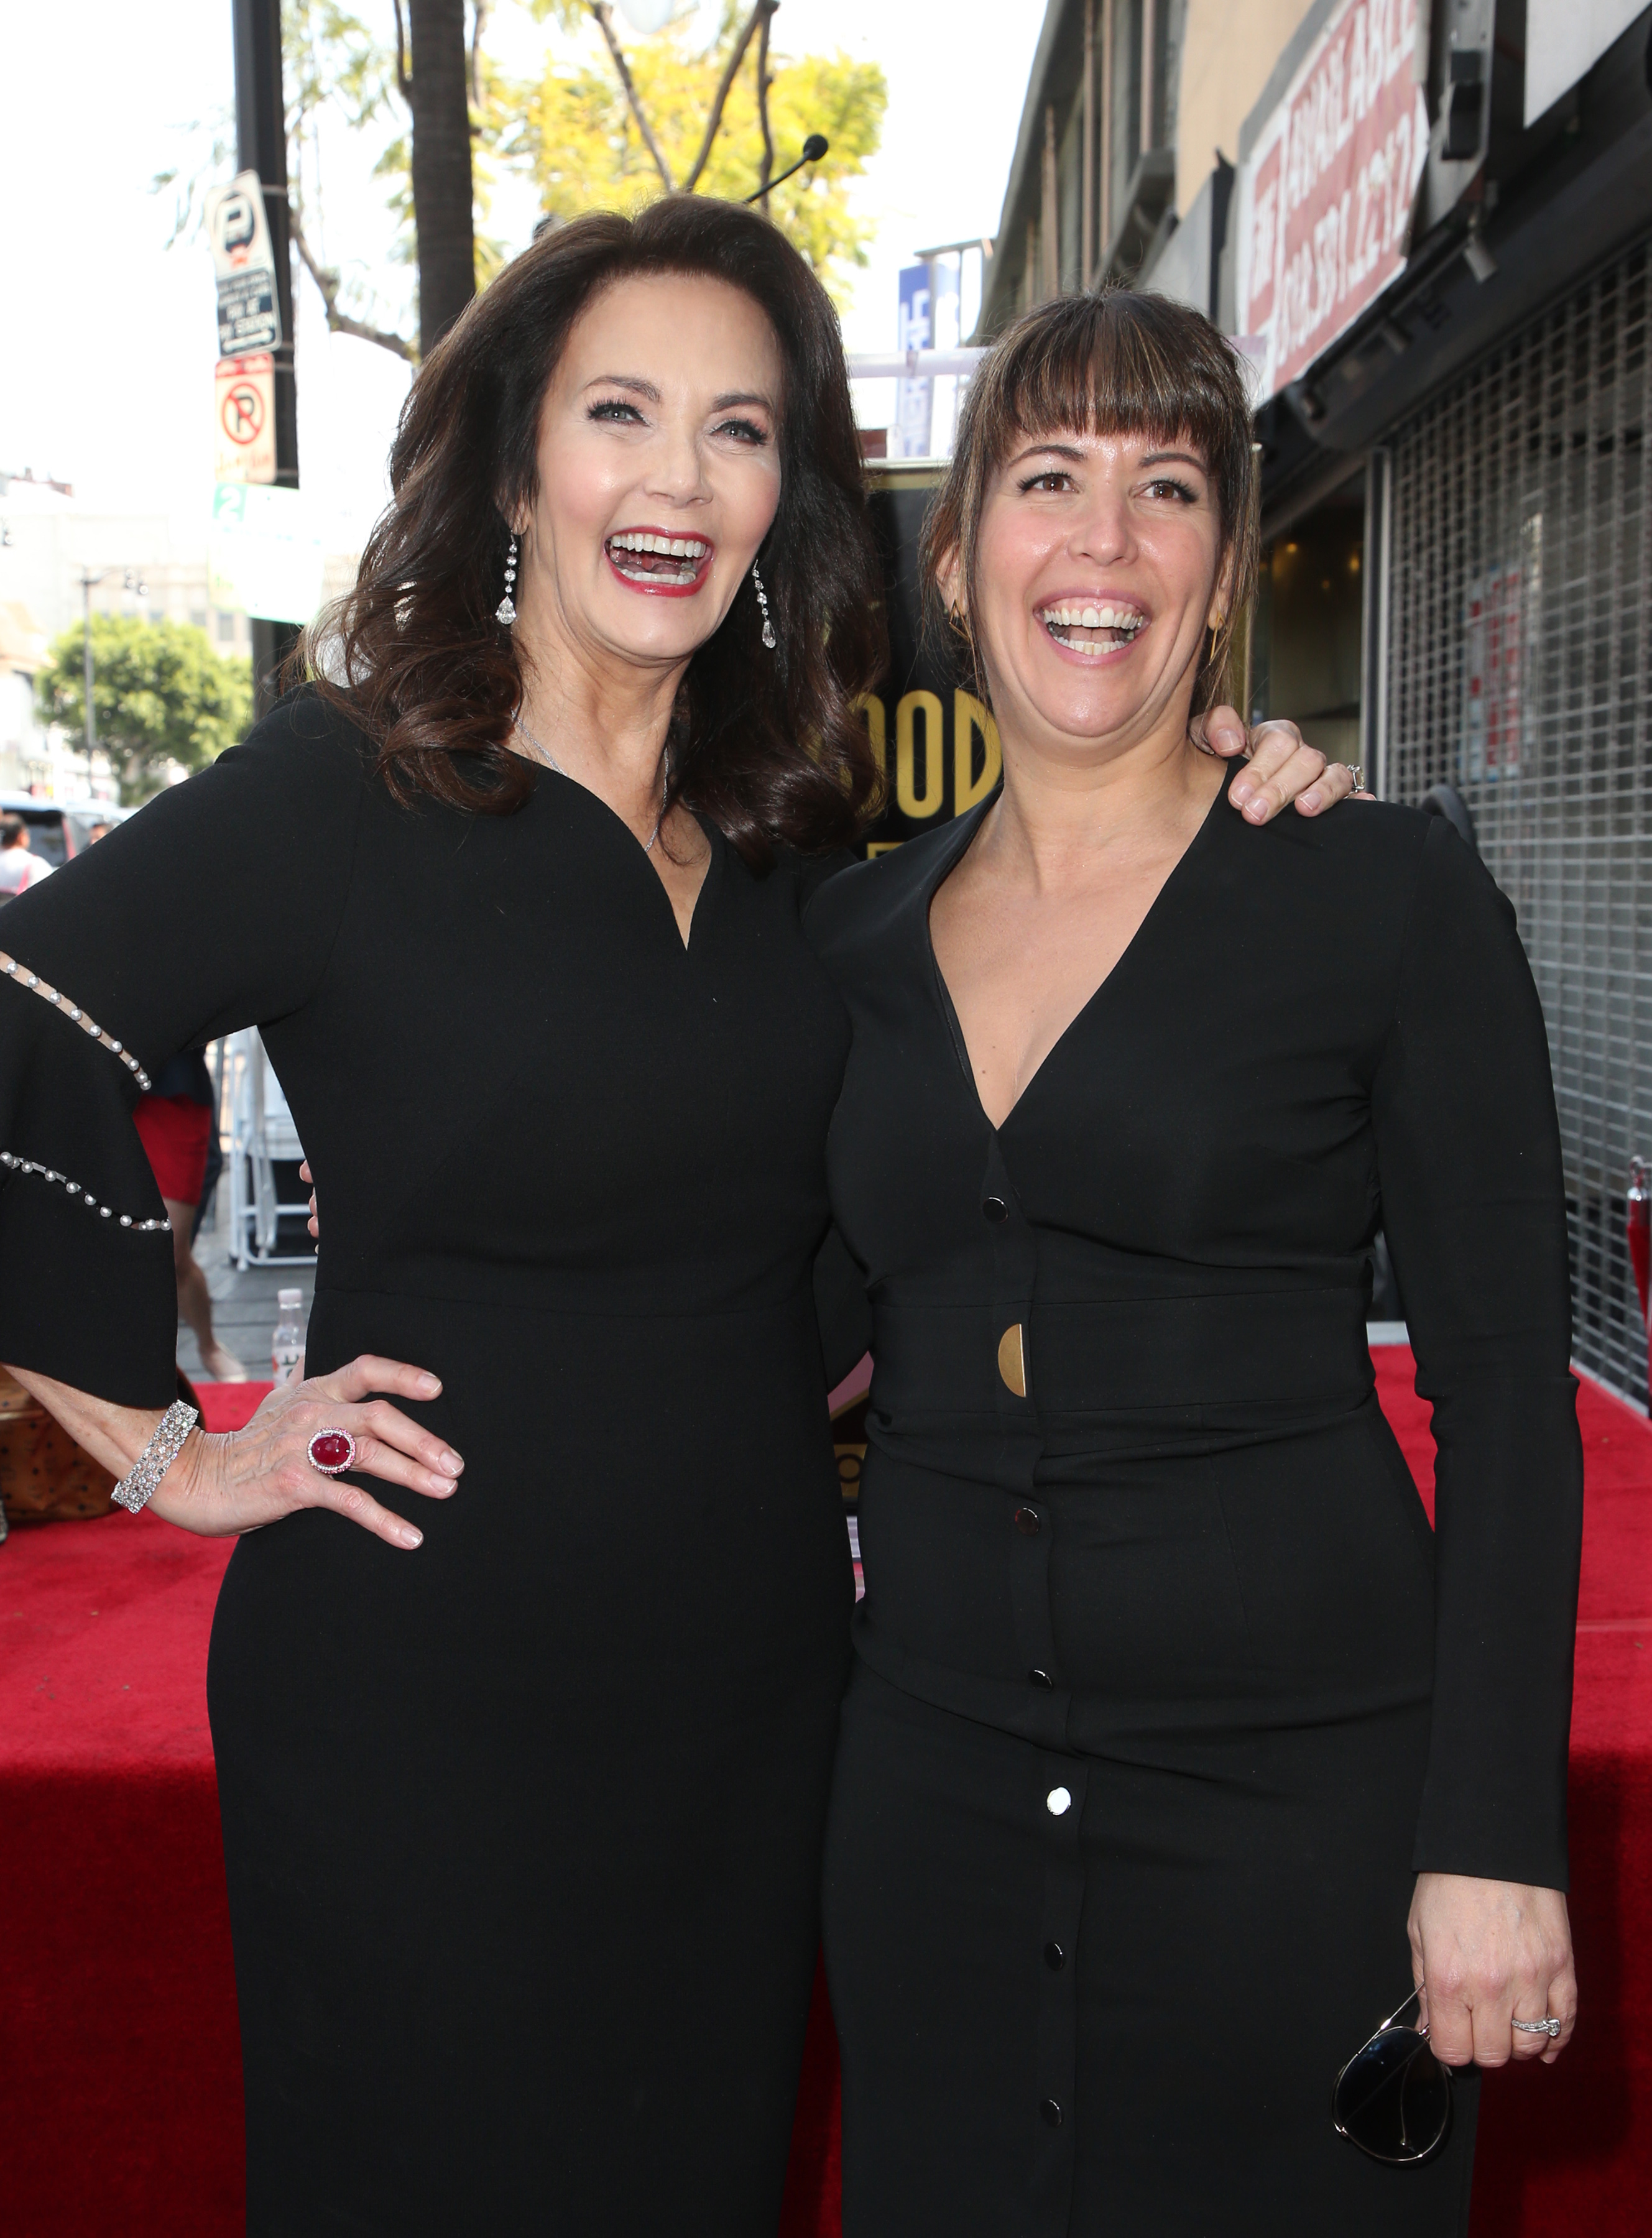 Lynda Carter Honored With Star On The Hollywood Walk Of FameFeaturing: Lynda Carter, Patty JenkinsWhere: Hollywood, California, United StatesWhen: 03 Apr 2018Credit: FayesVision/WENN.com